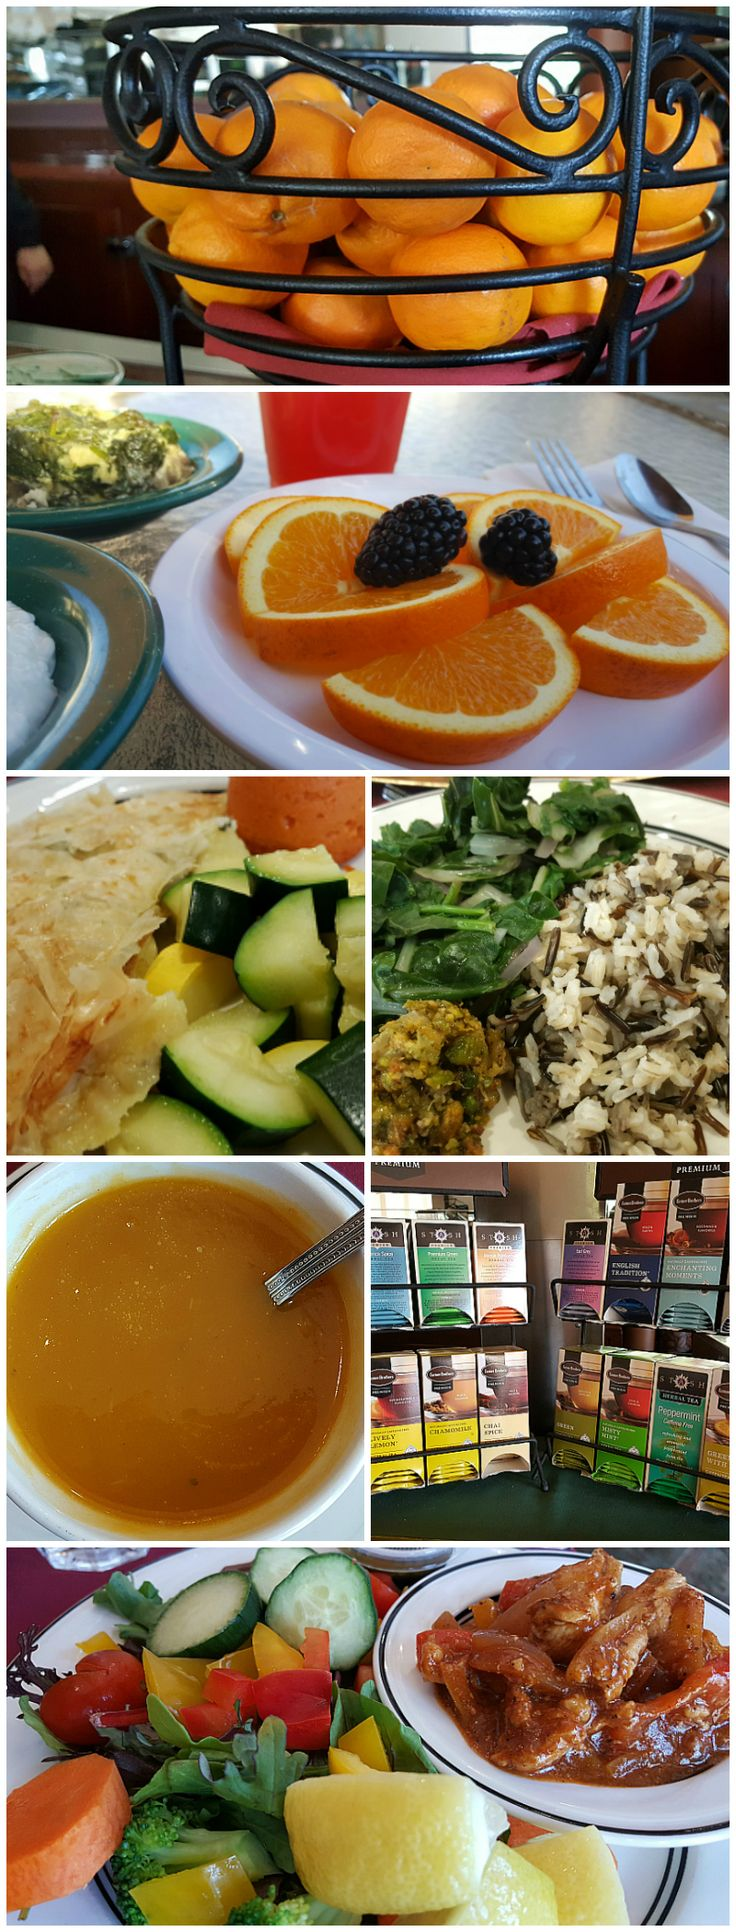 Healthy Meals and Snacks Included at The Oaks at Ojai - Southern California Spa Resort